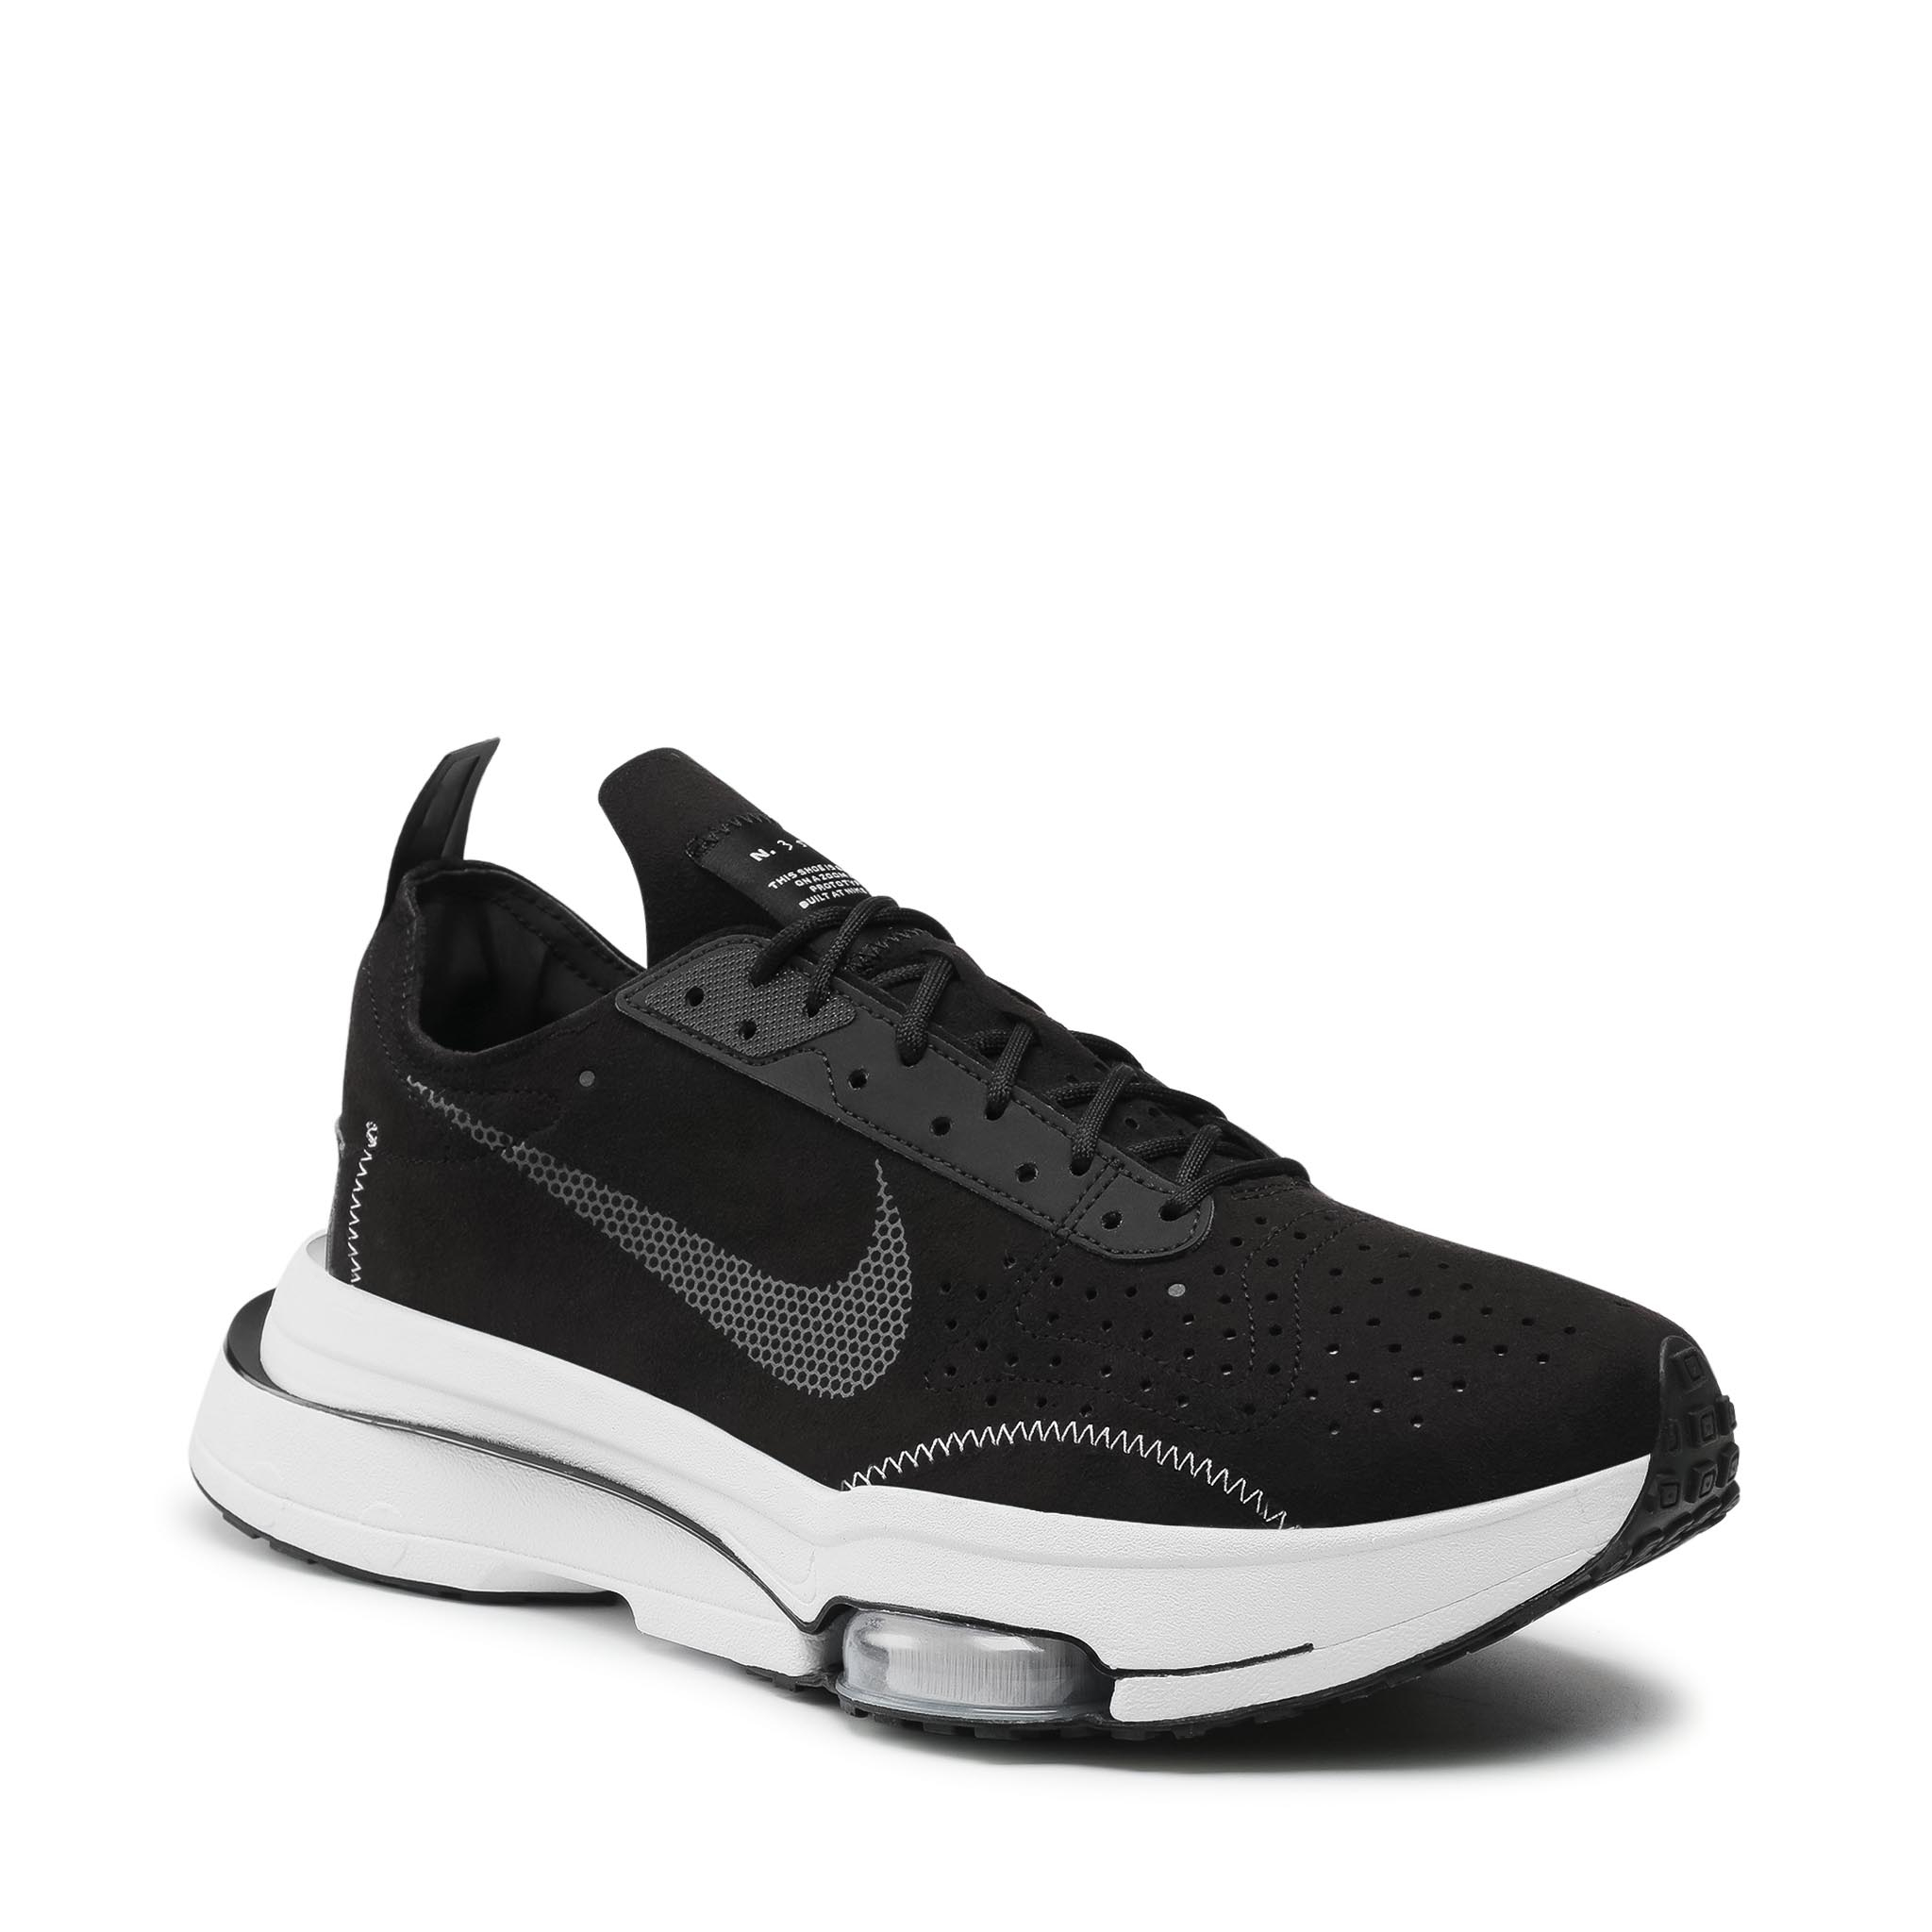 Chaussures NIKE - Air Zoom-Type CJ2033 001 Black/Anthracite/White